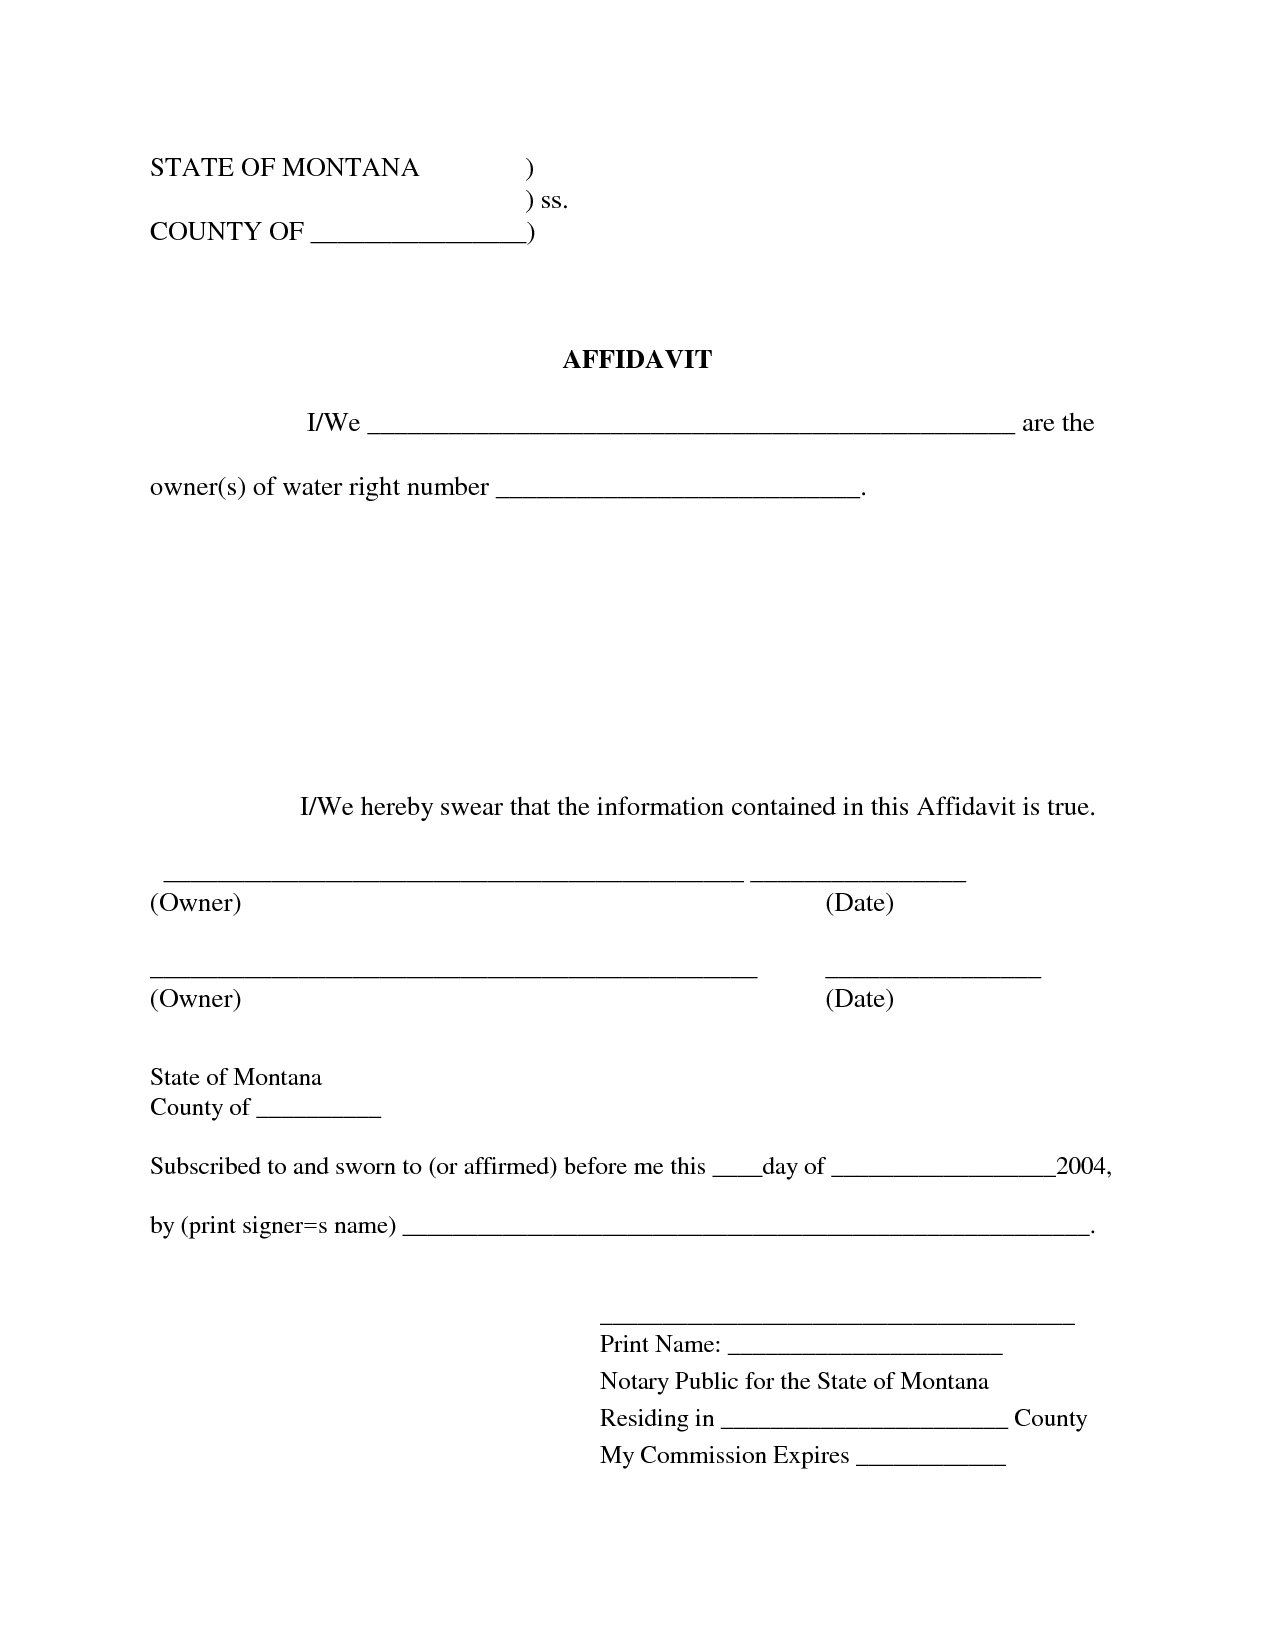 Free blank affidavit form blank sworn affidavit forms kiss68one free blank affidavit form blank sworn affidavit forms thecheapjerseys Image collections